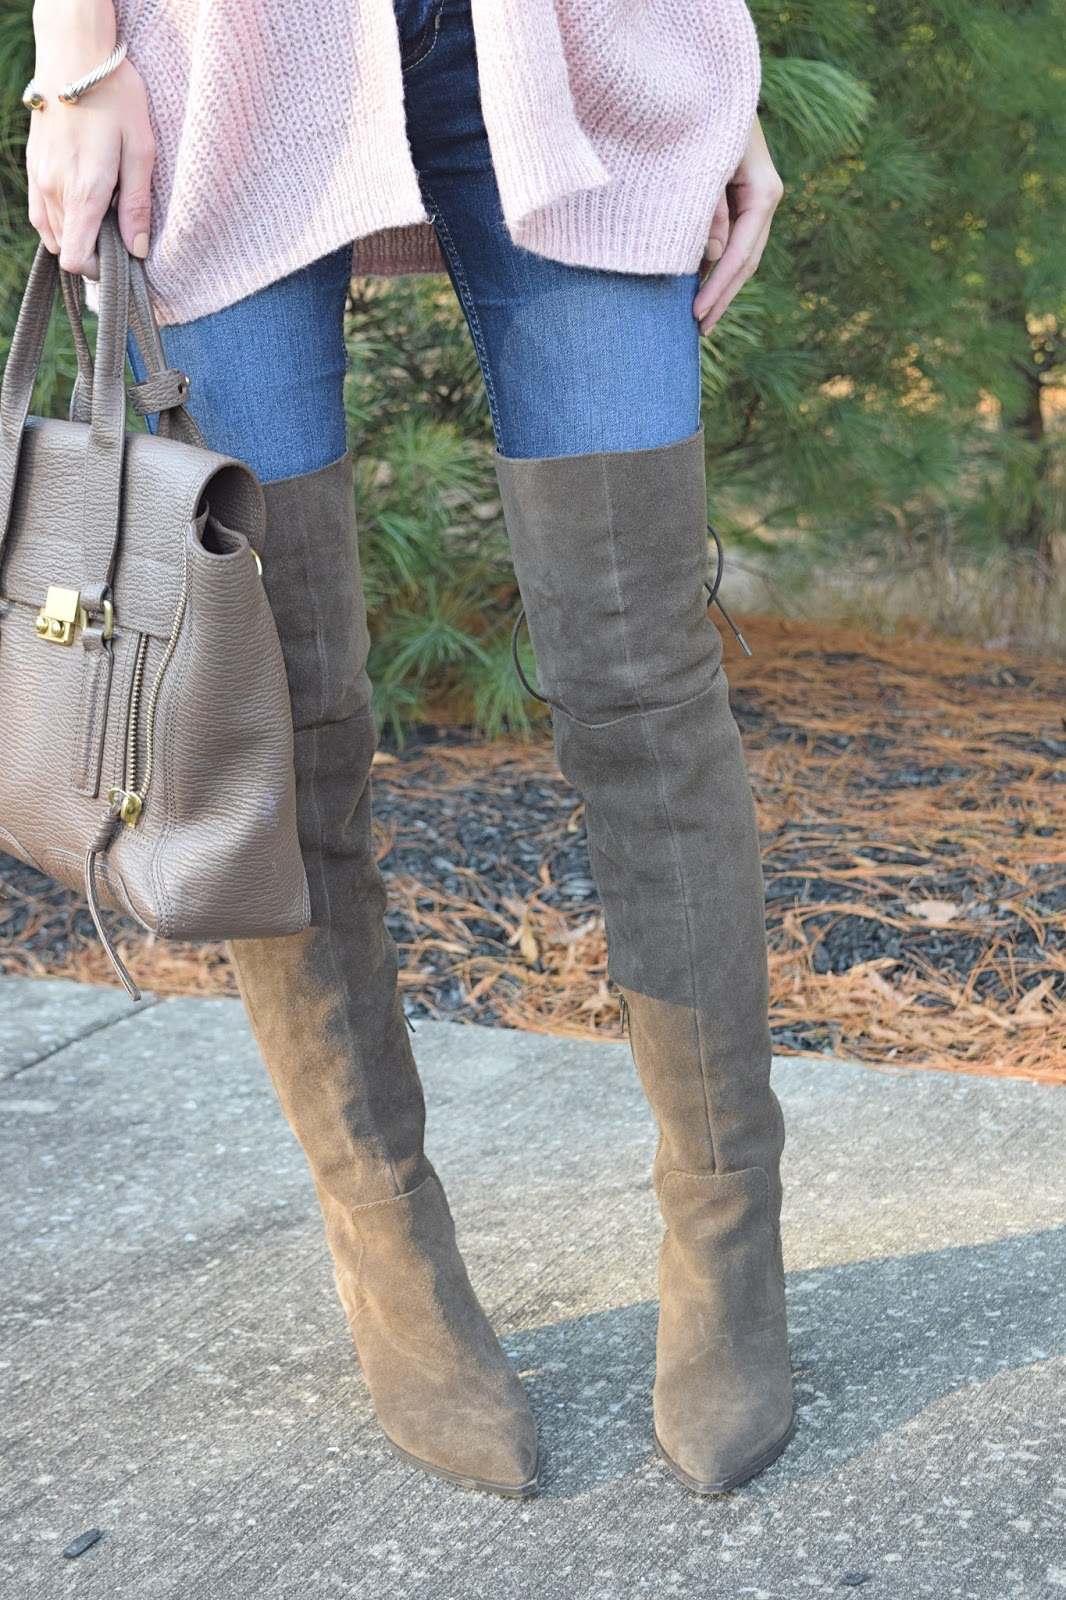 Wearing Aldo Haskova Over the Knee Boots, Target Mossimo Pink Cardigan